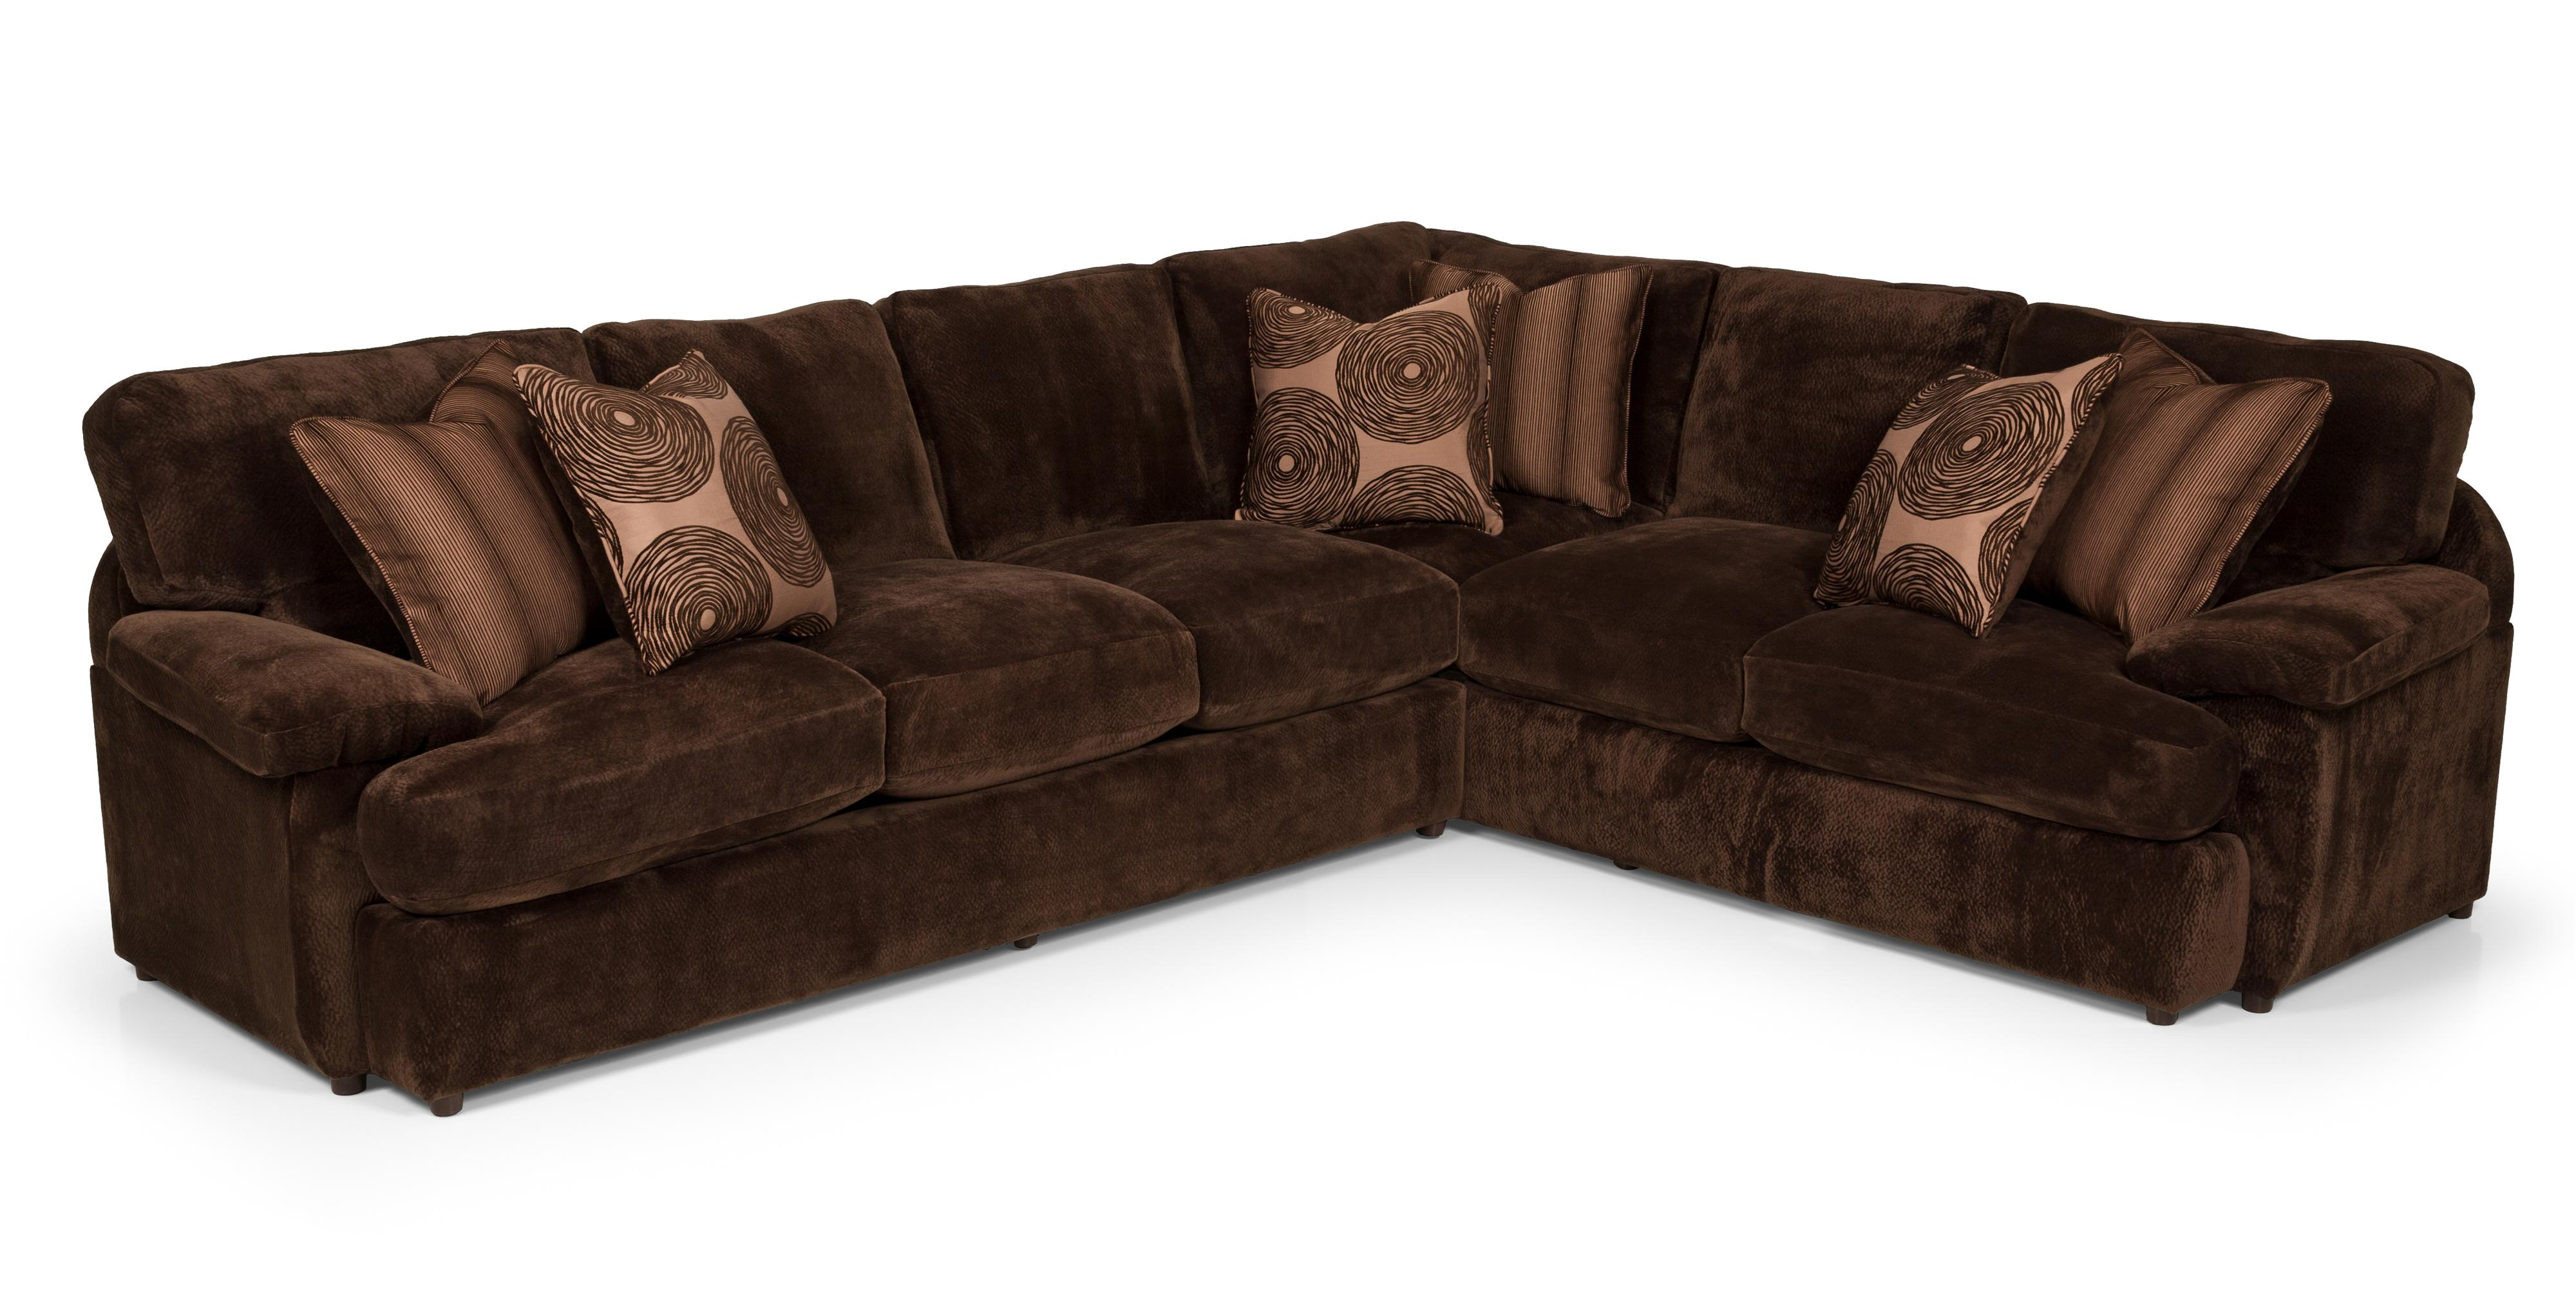 2 Pc Sectional Sofa w/ LAF Loveseat